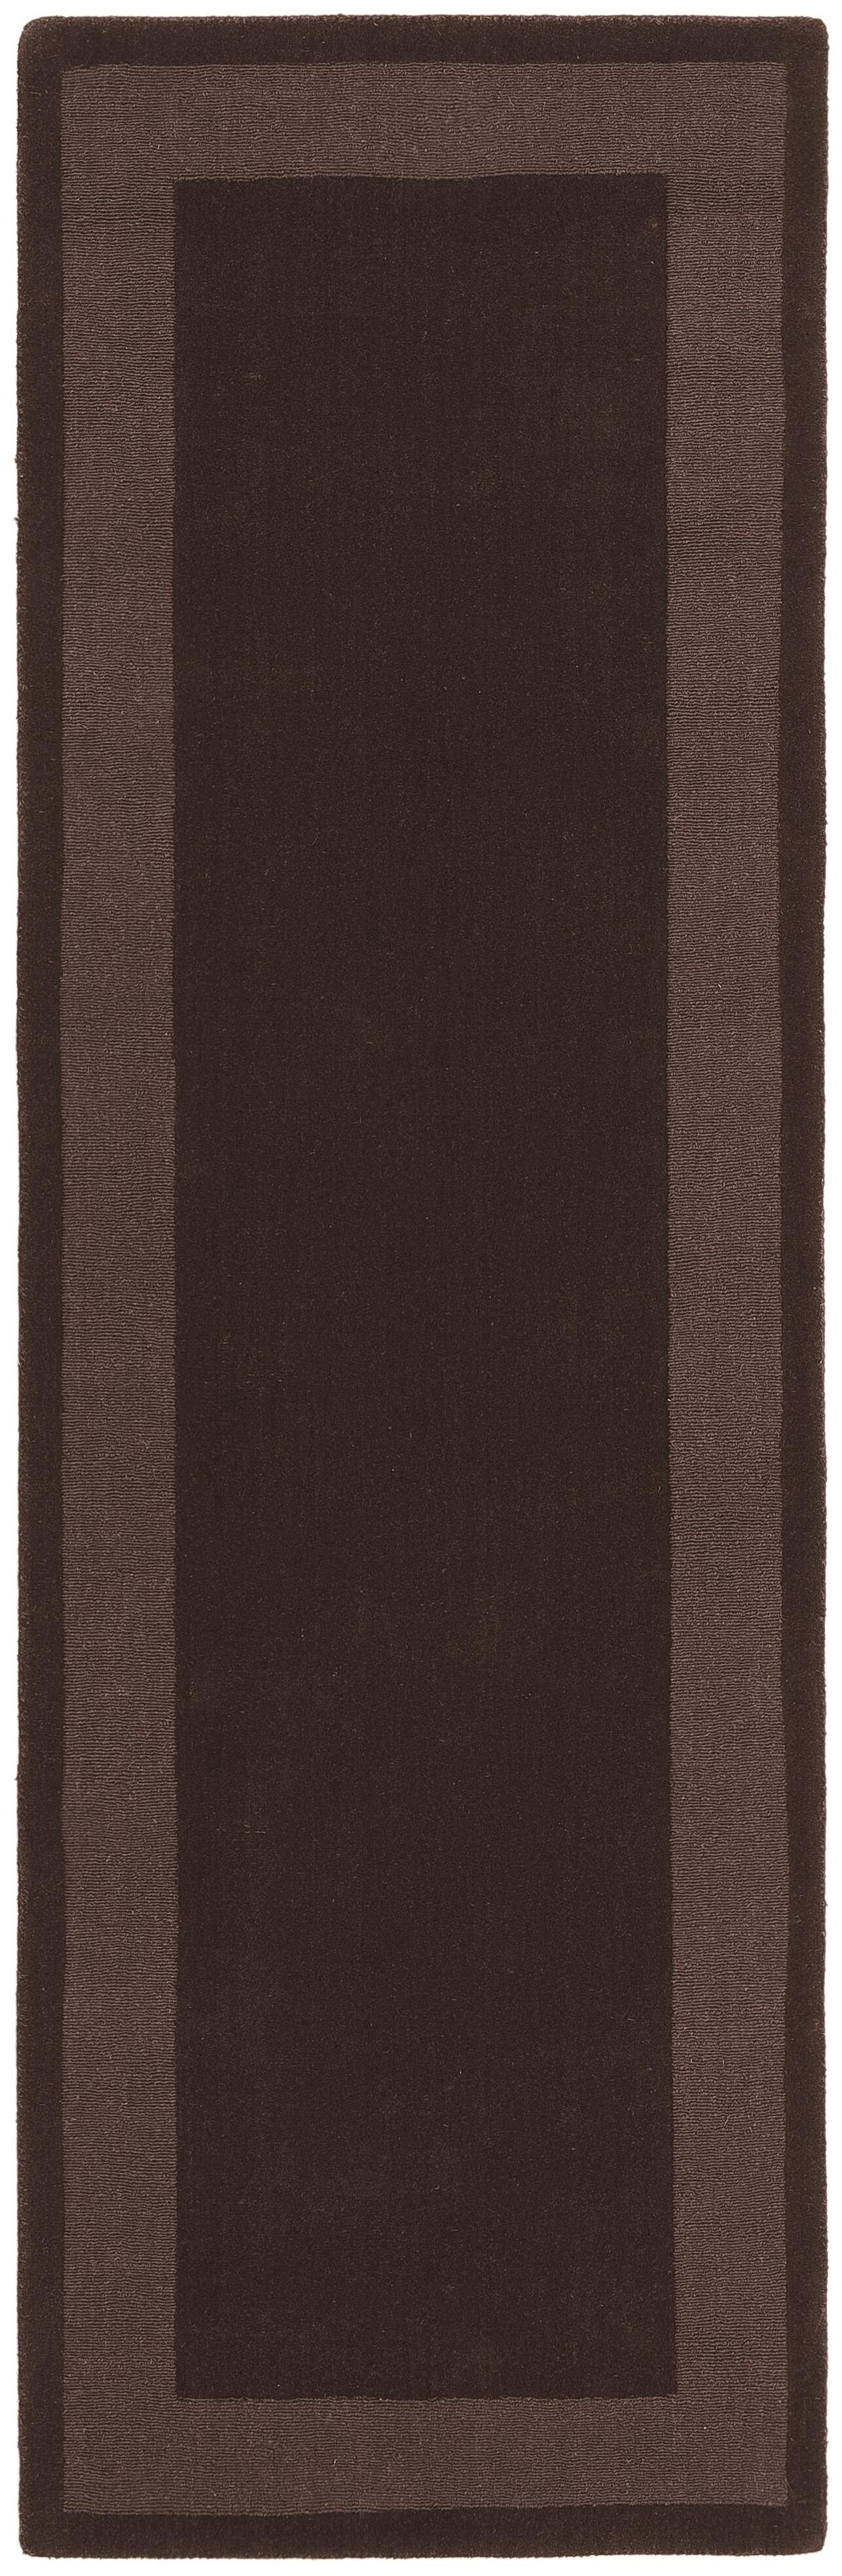 Transitions Chocolate Border Rug Rug Size: Runner 2'6